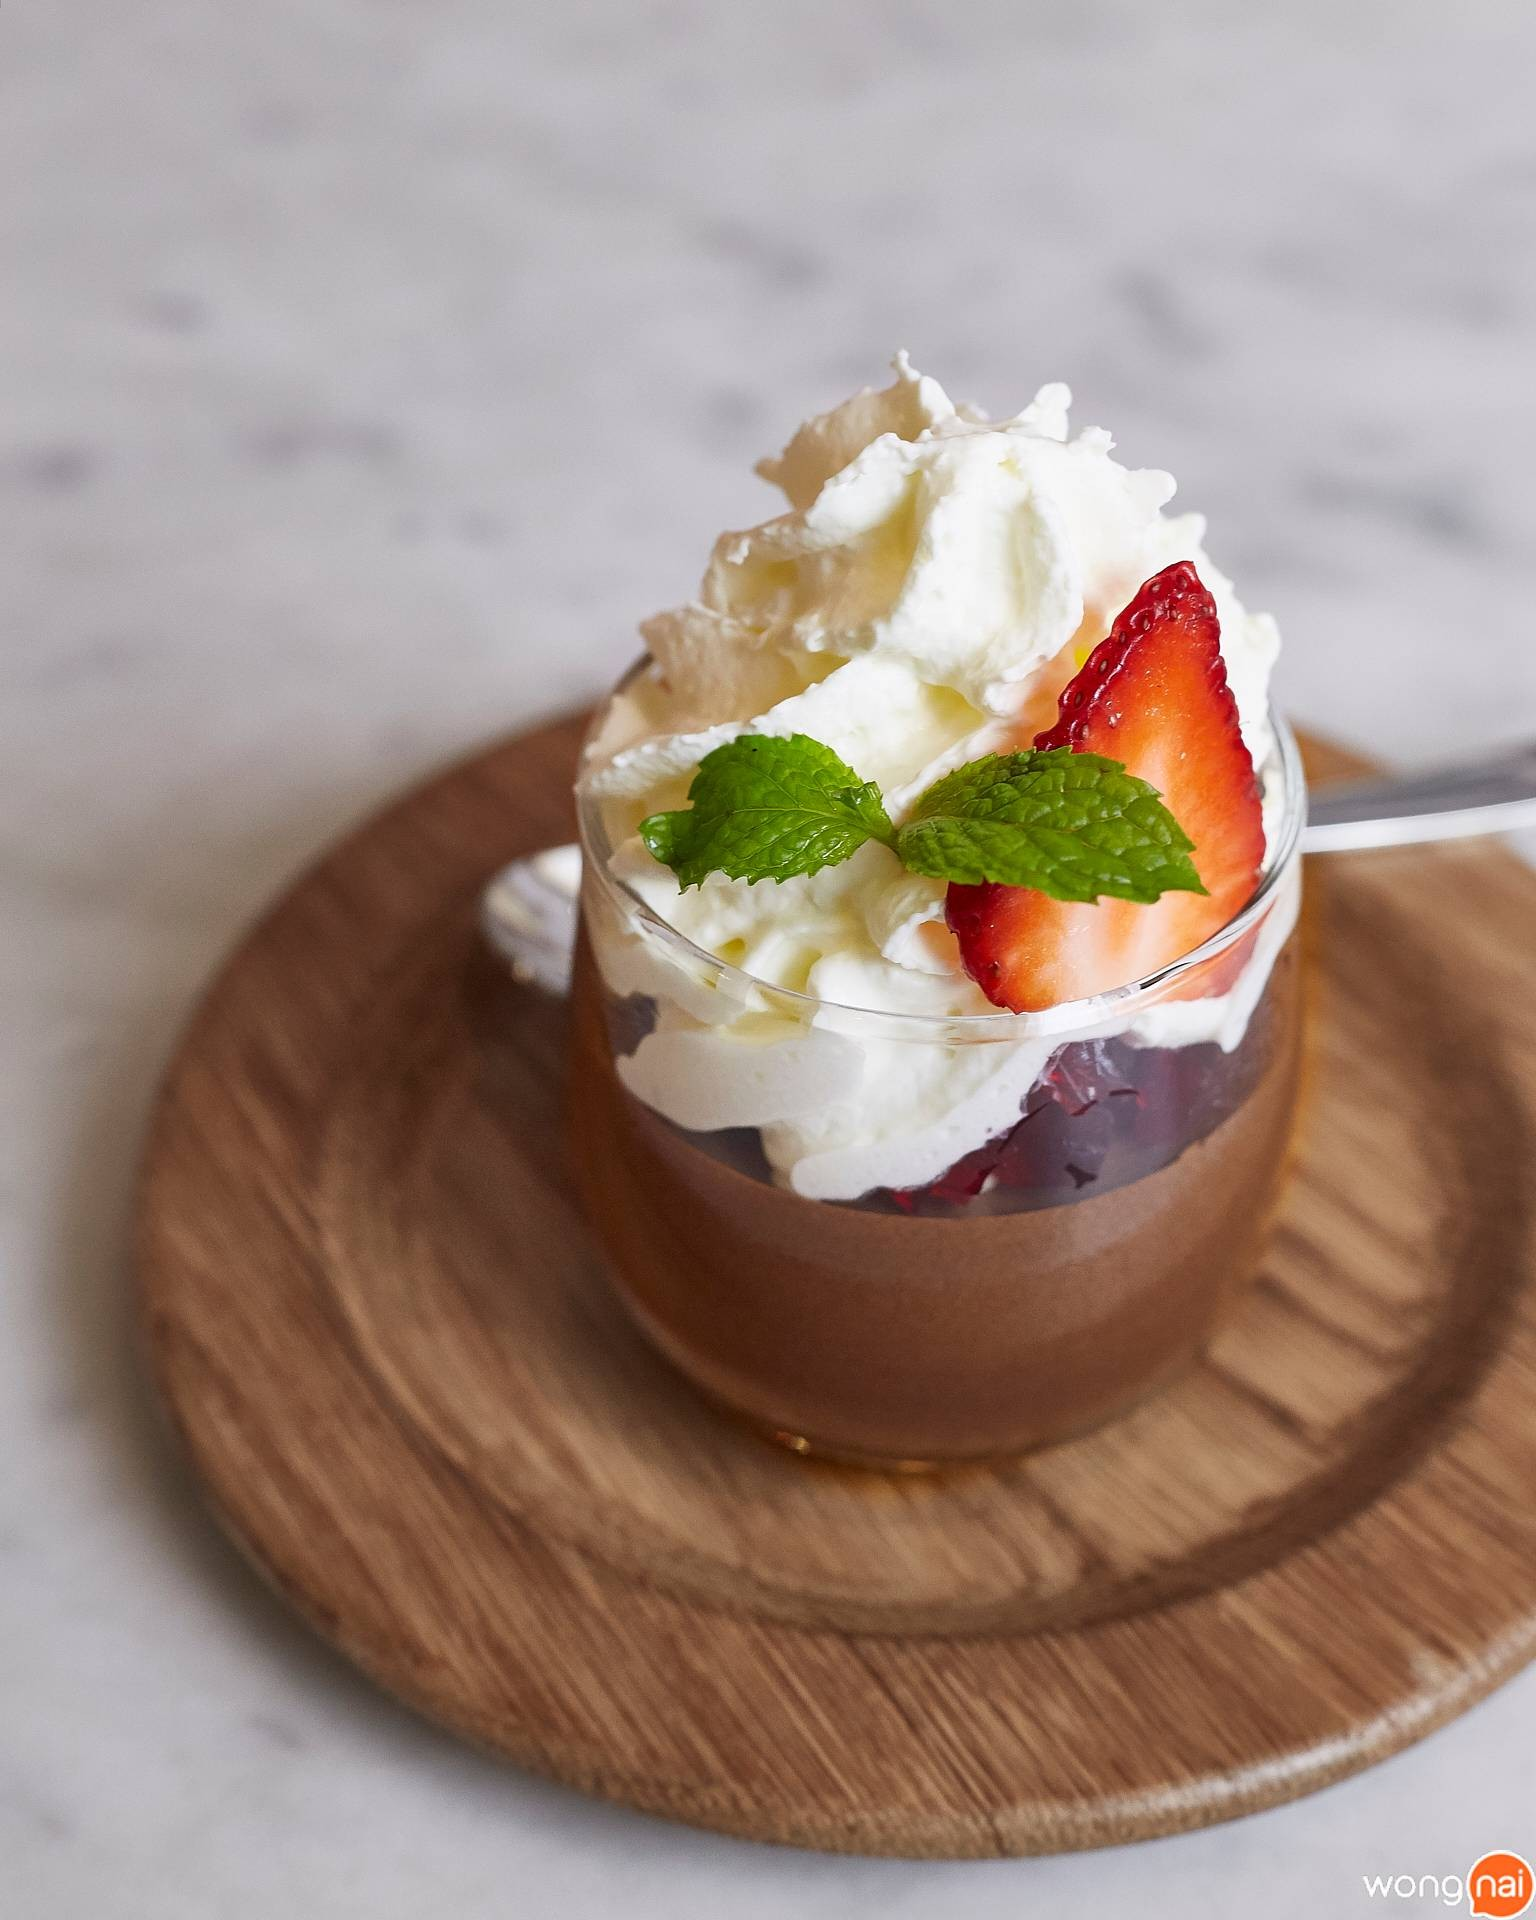 Chocolate Mousse ของร้าน On the Table, Tokyo Cafe